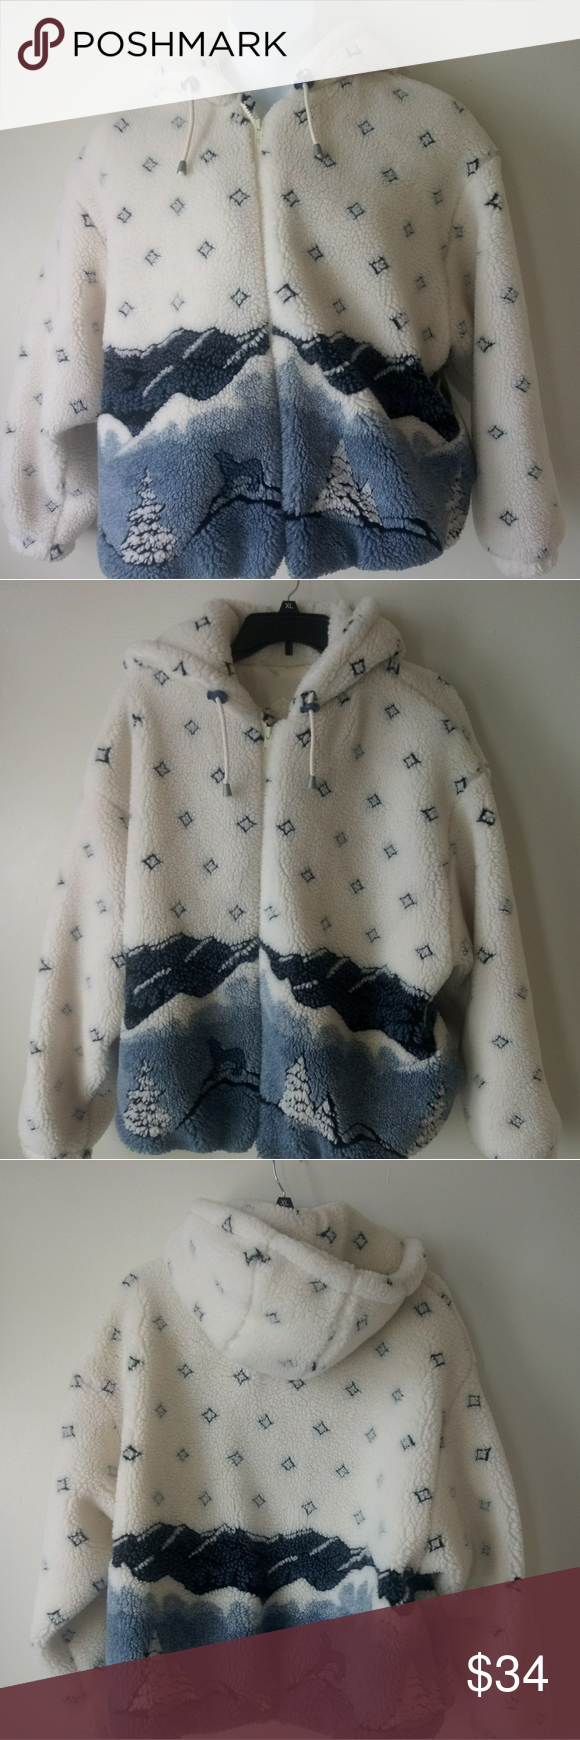 Izzi Outerwear Teddy Women S Hooded Jacket Size L Pre Owned In Good Condition Izzi Hooded Jacket Very Cute Design Womens Hooded Jackets Hooded Jacket Jackets [ 1740 x 580 Pixel ]